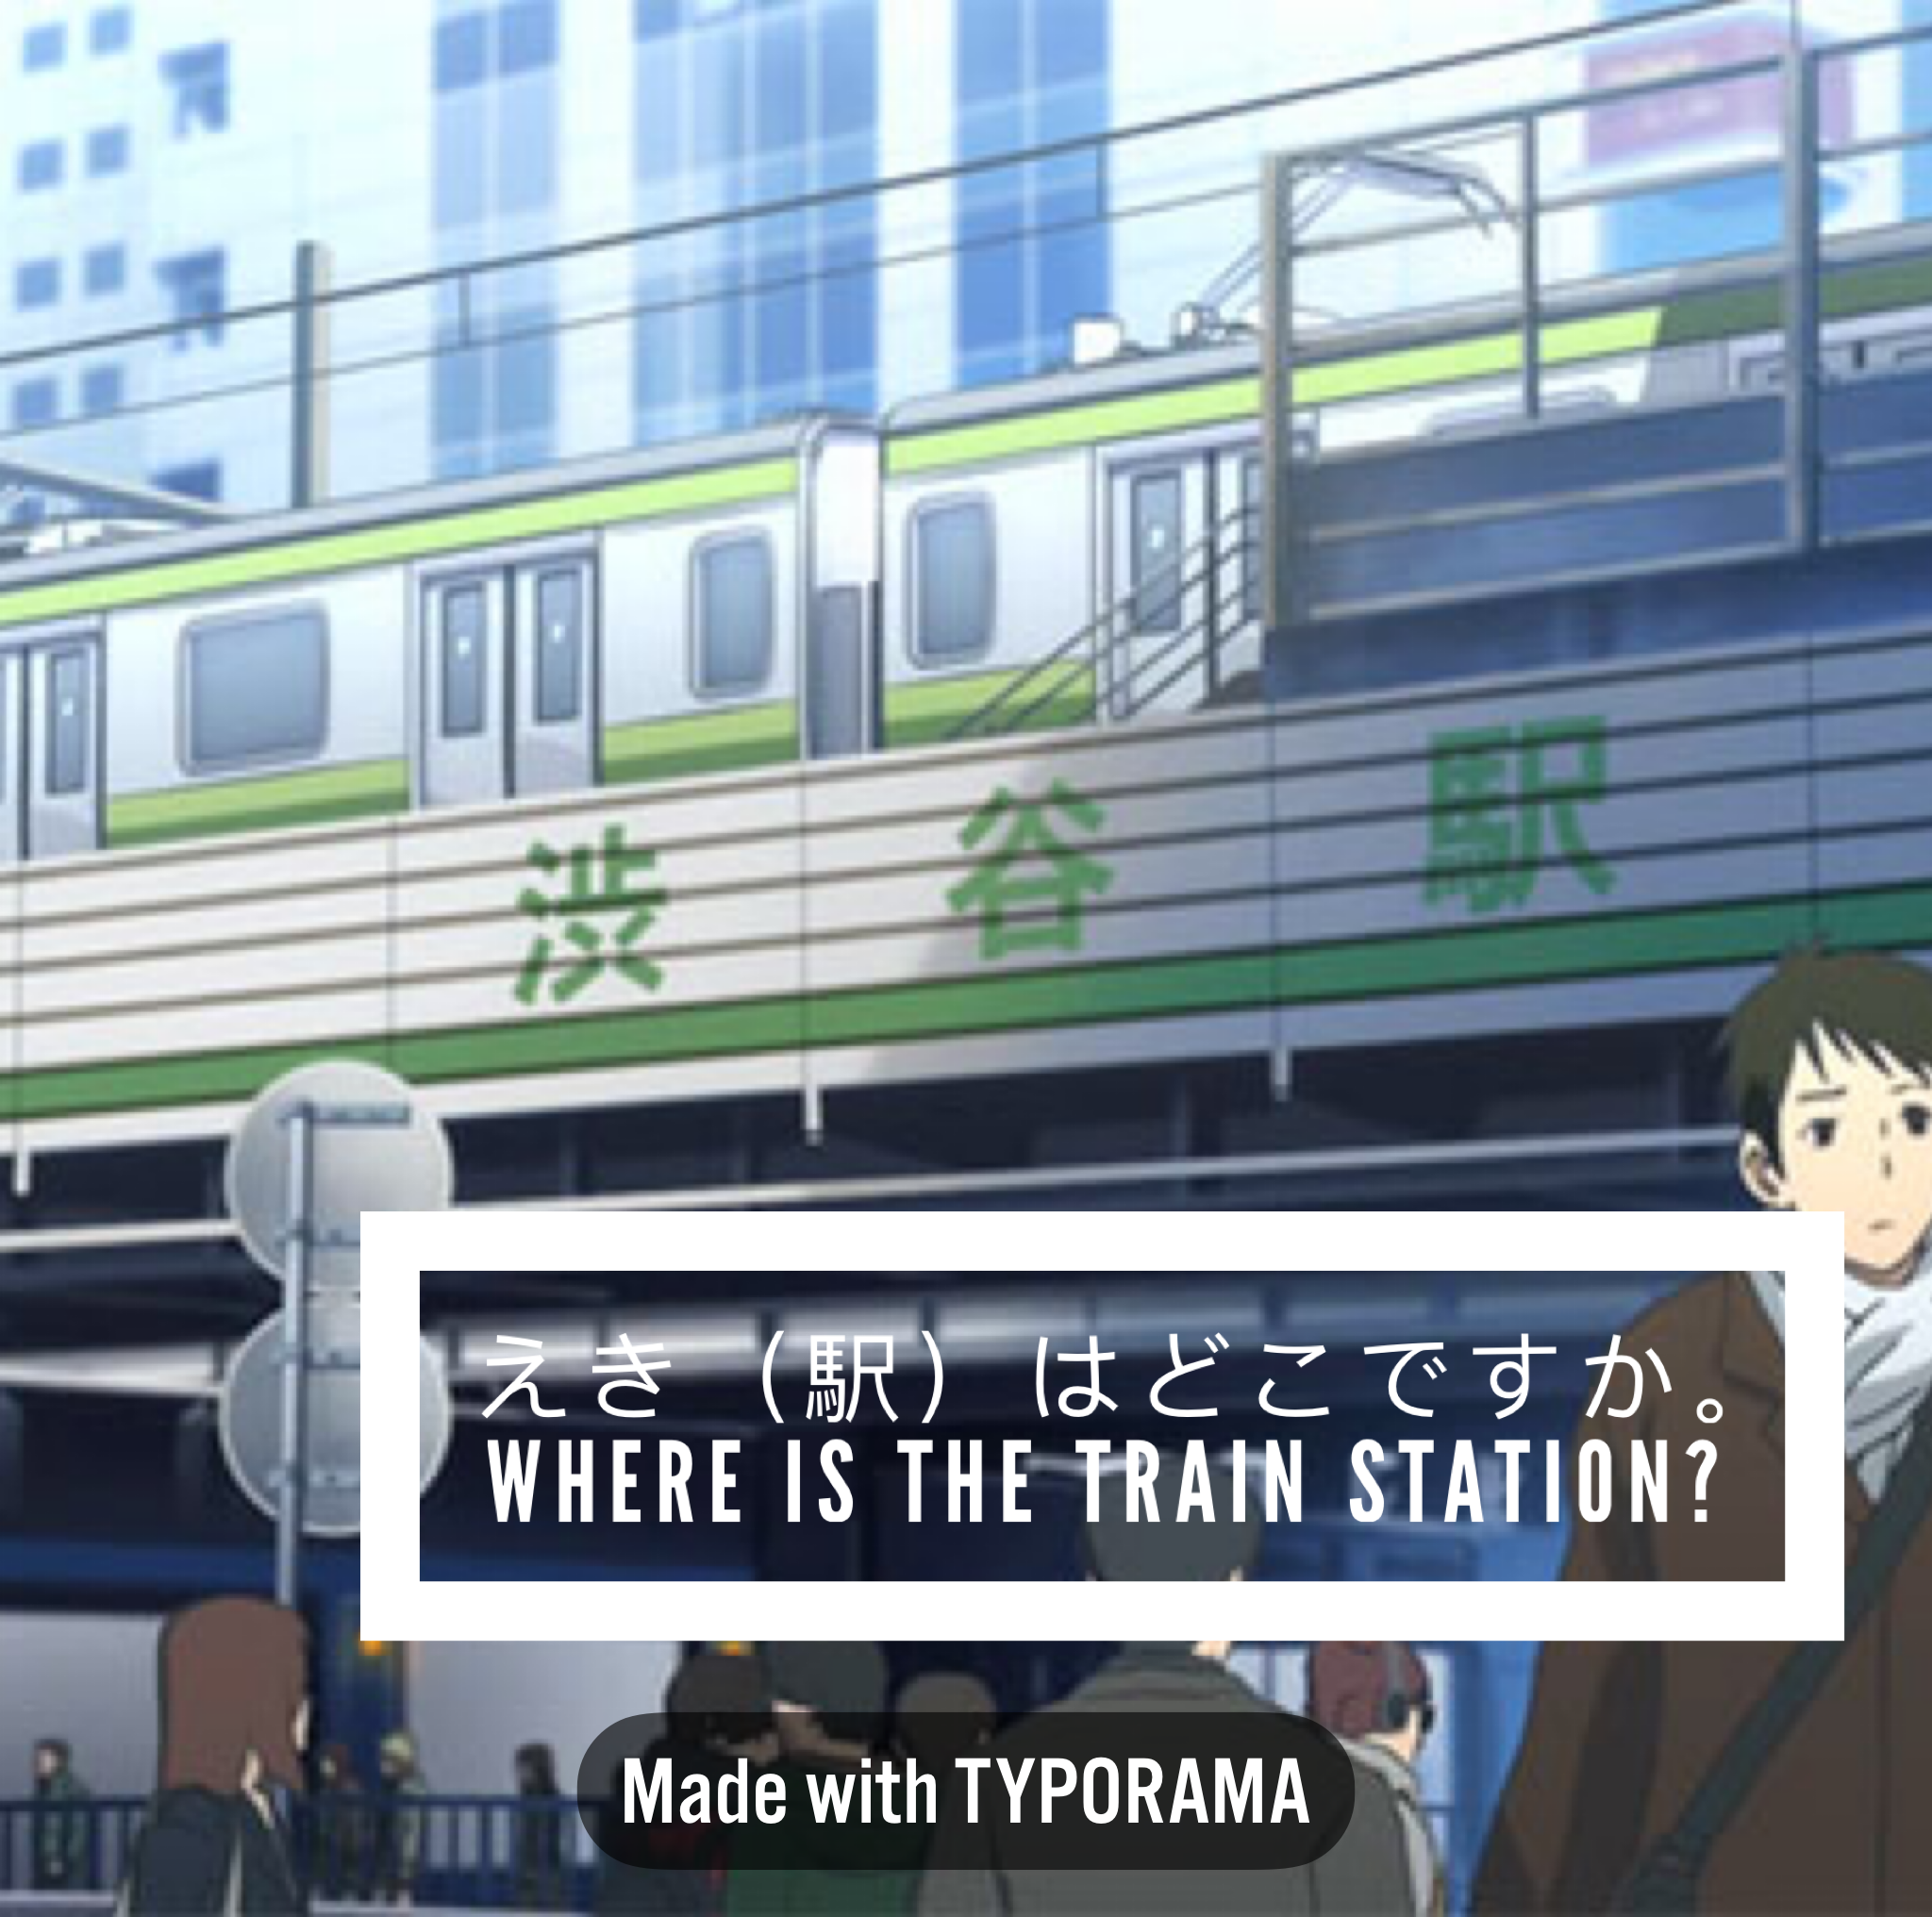 えき(駅)はどこですか。 Where is the train station. You can put ...